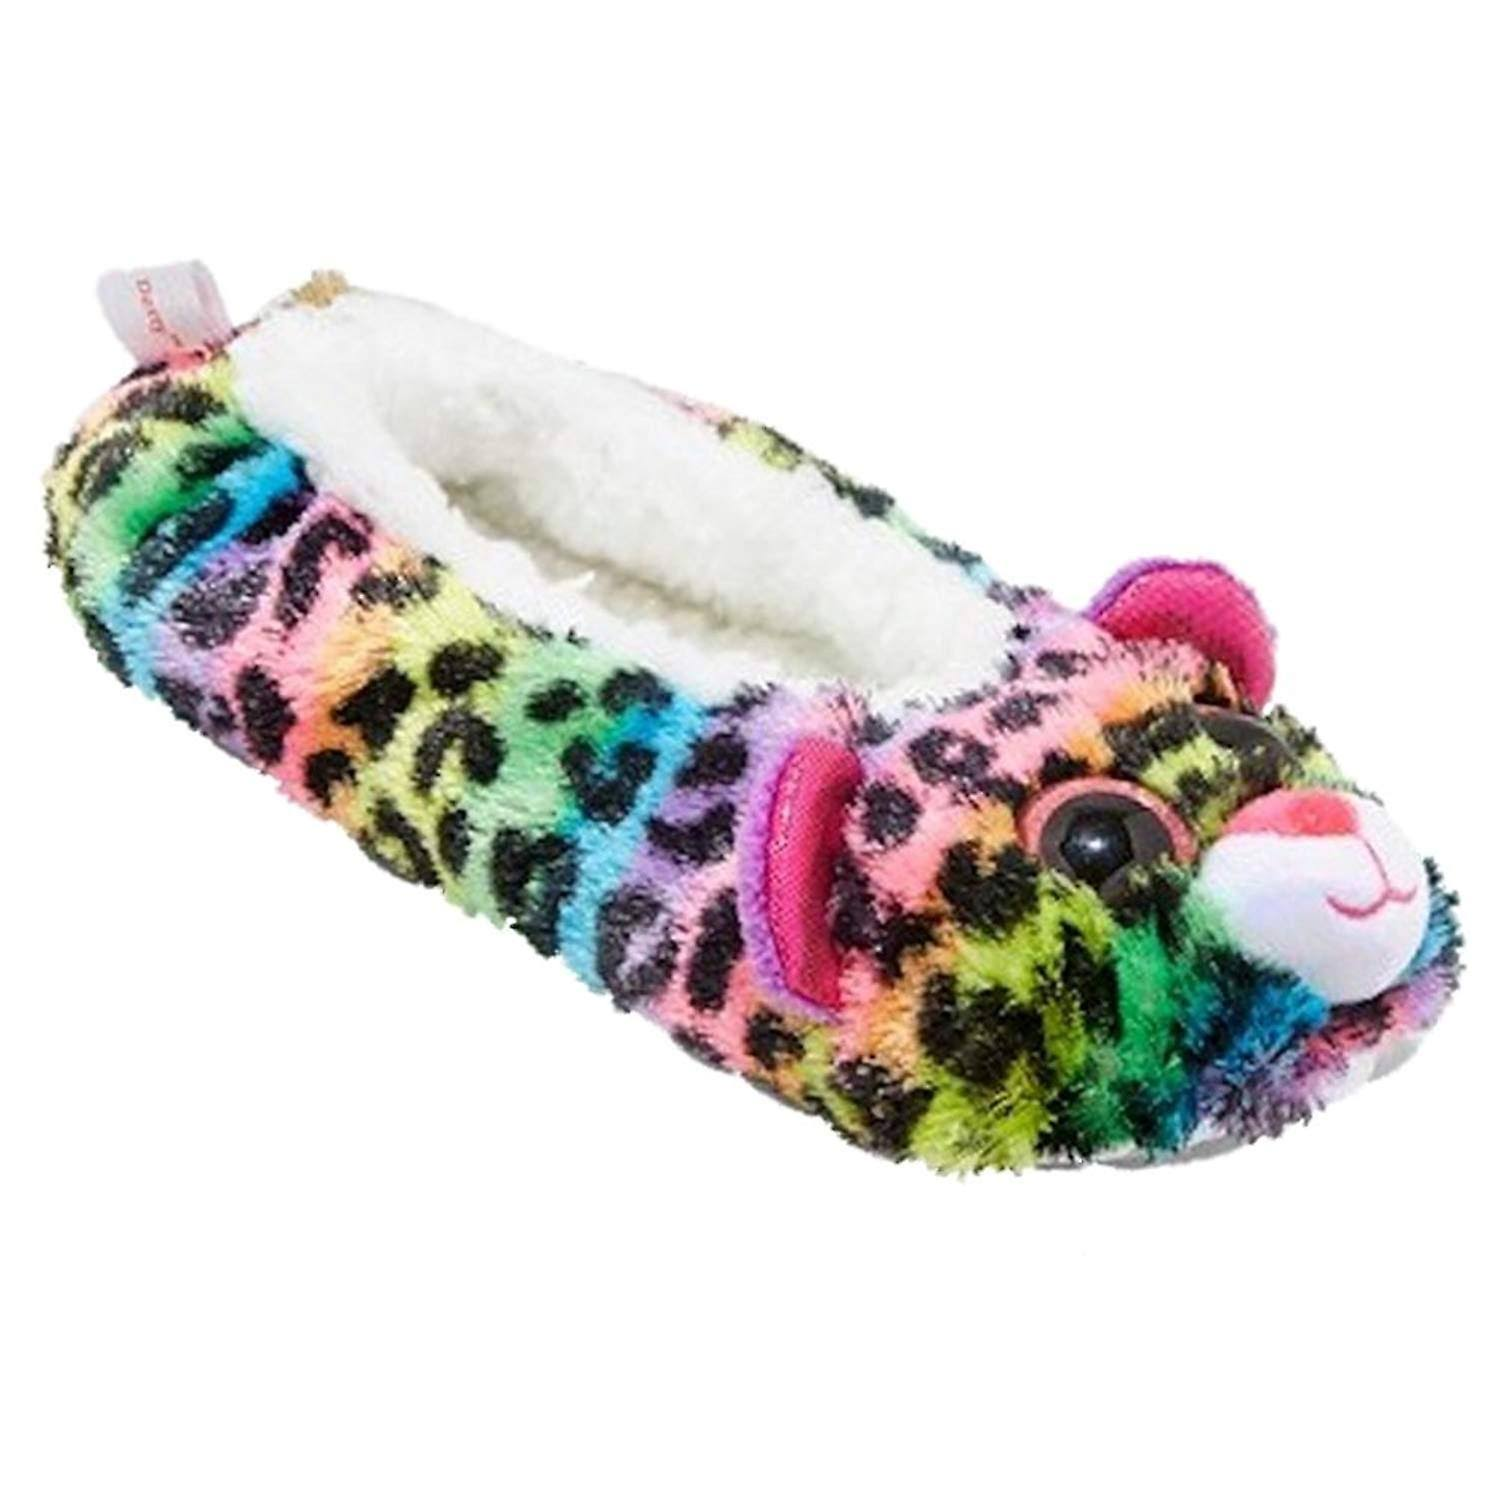 TY Beanie Boo Slippers - Rainbow The Poodle, Large